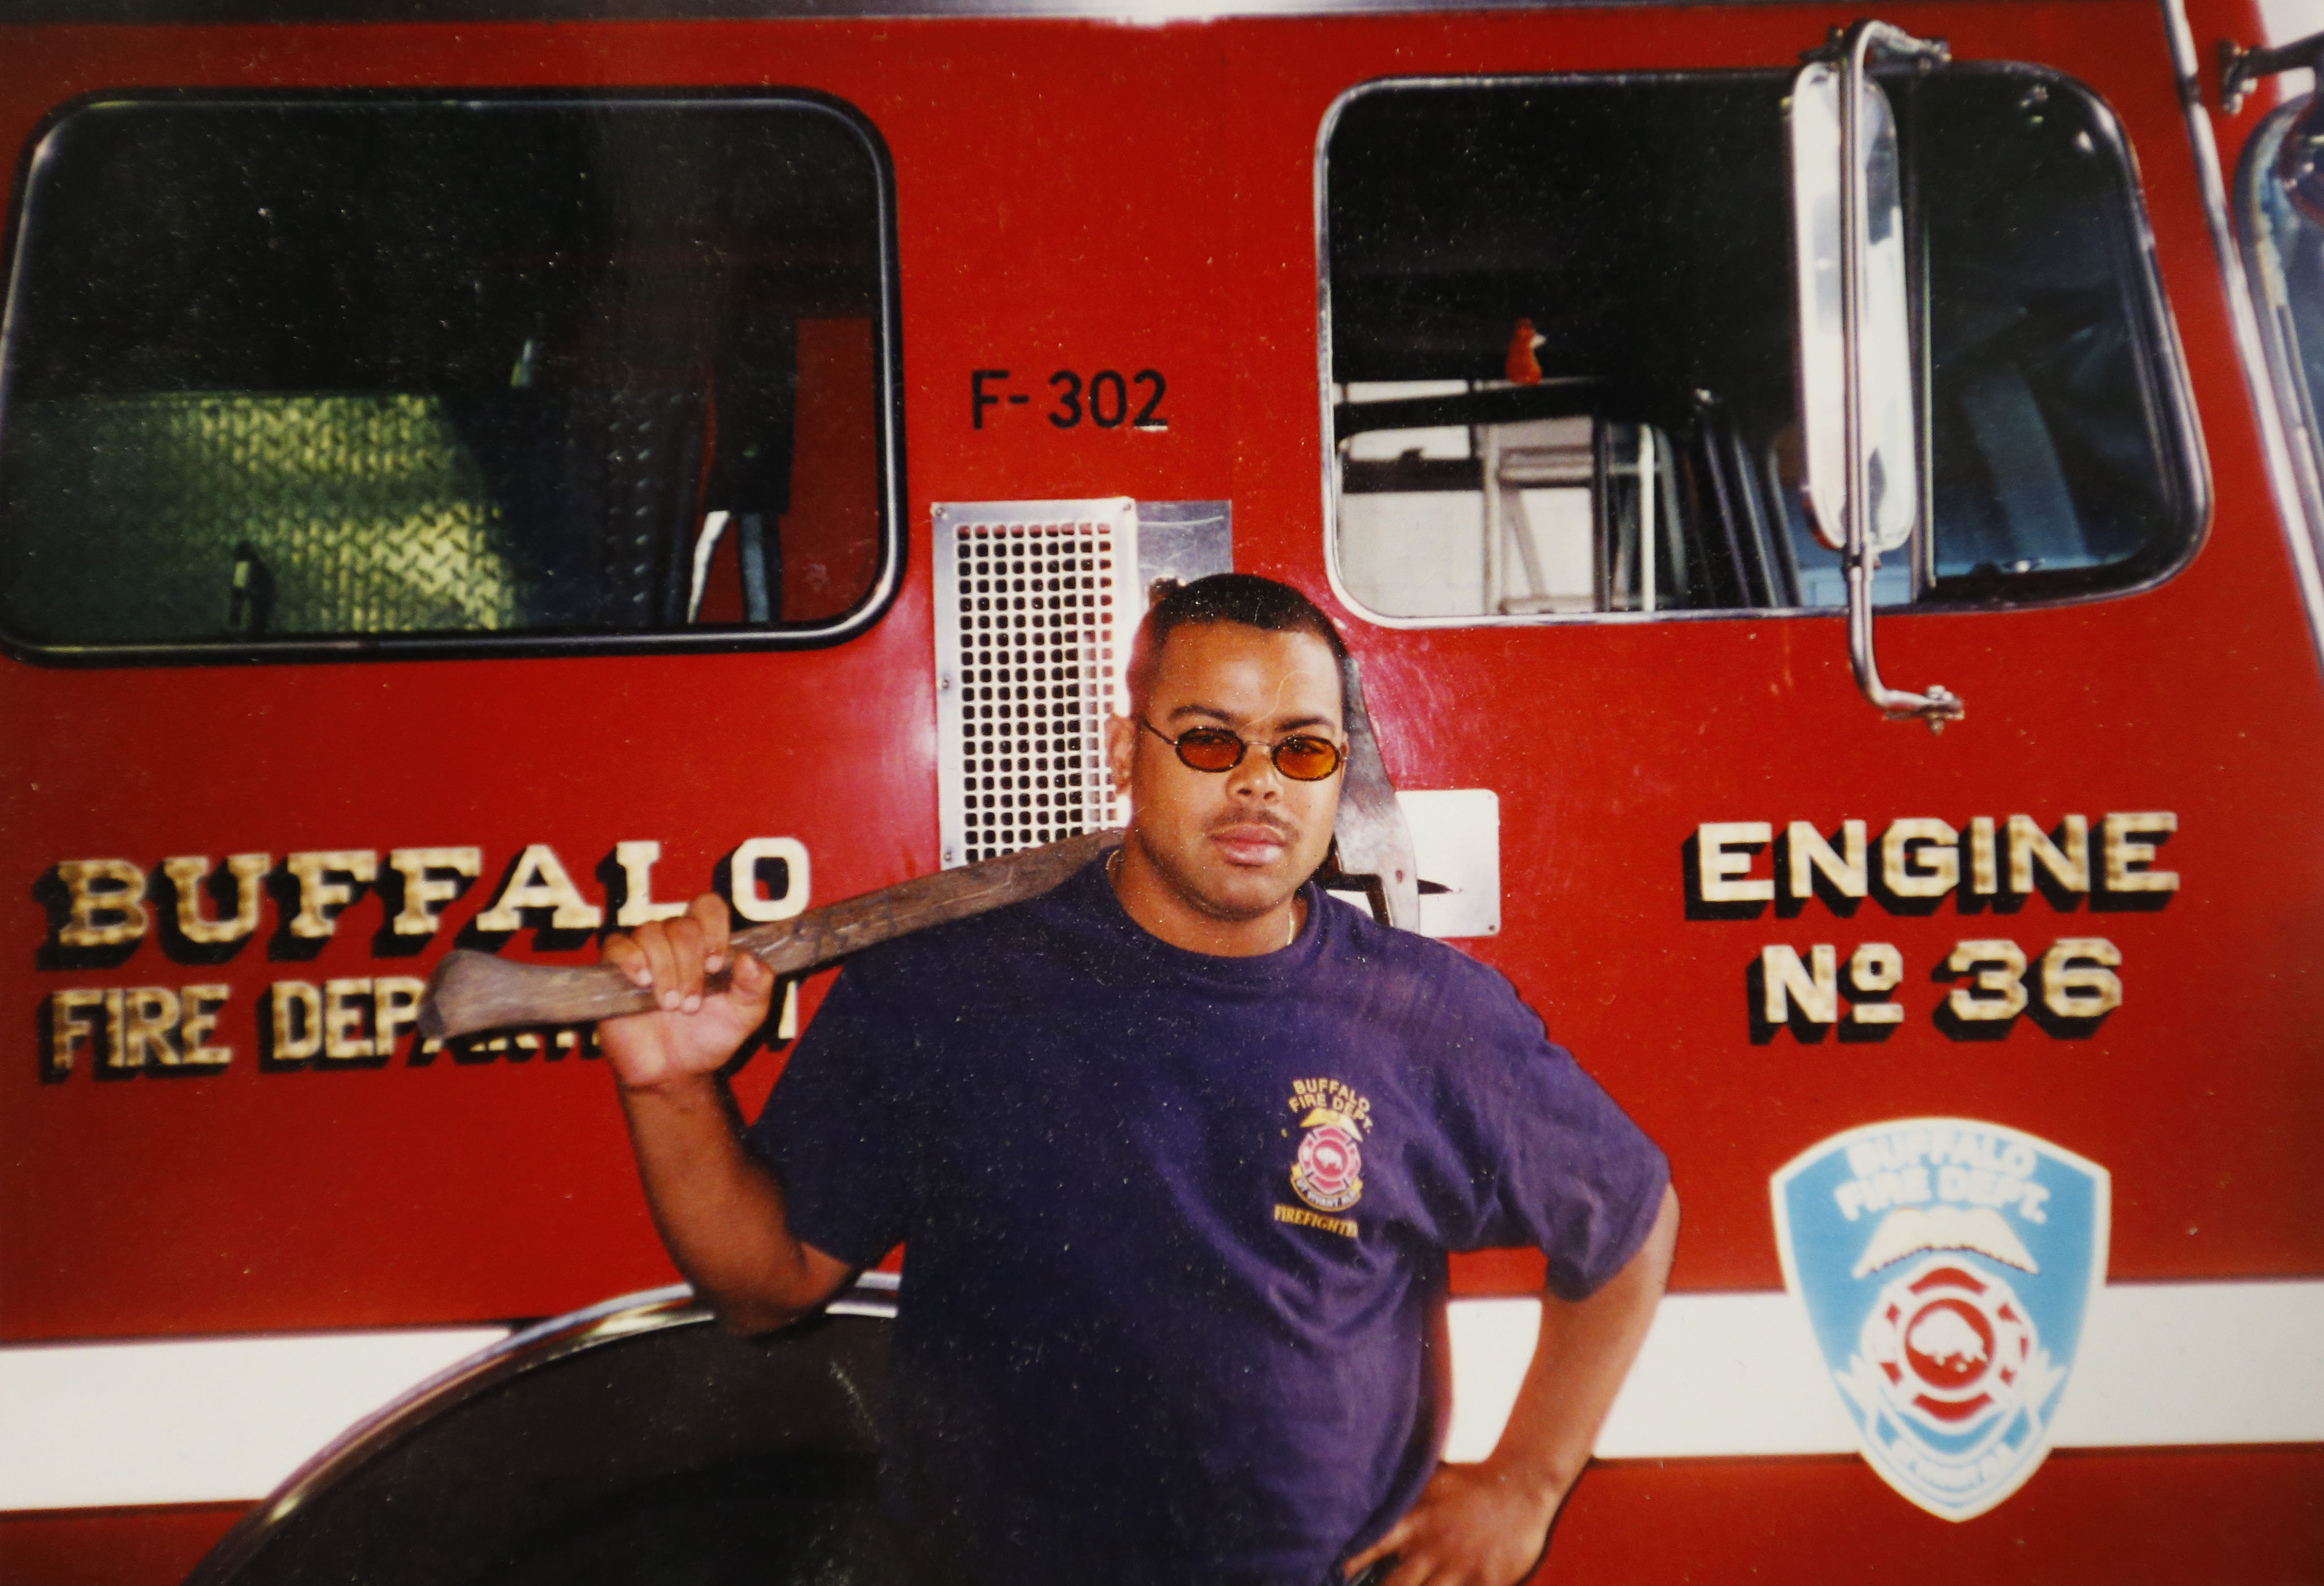 Buffalo firefighter Kristian T. Woods stands next to a fire truck in an undated family photo. Woods'  heart stopped in 2012 while he was in Erie County Sheriff's deputies custody and undergoing an apparent psychiatric crisis. Woods was revived, but remained in a coma for nearly six months until he died. (Courtesy of Kristian Woods' family)